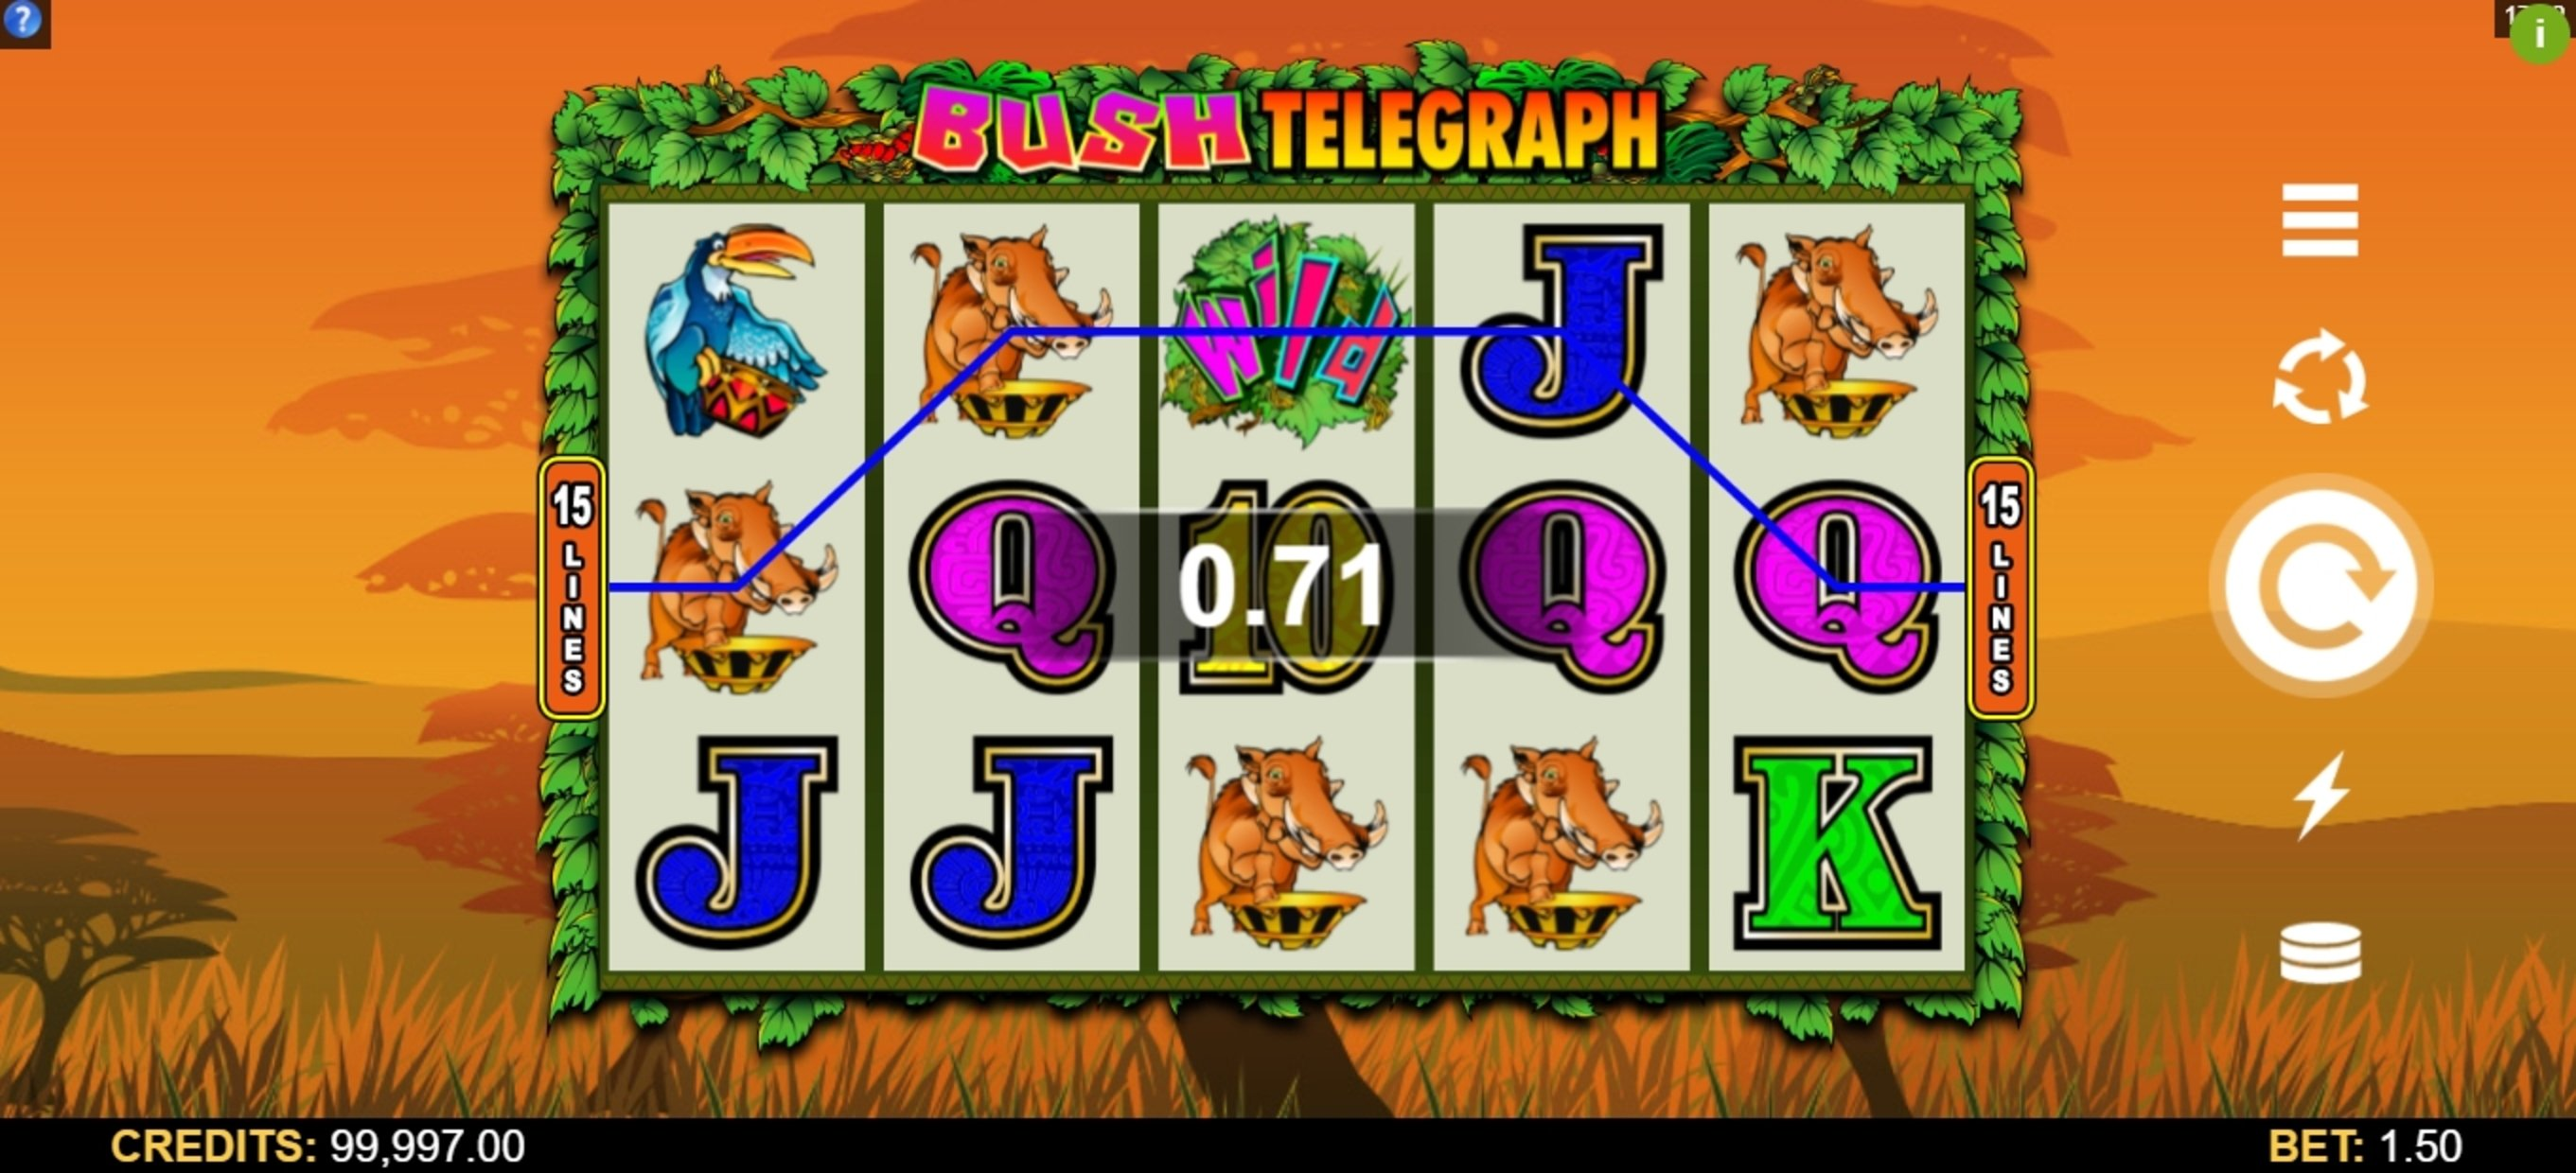 Win Money in Bush Telegraph Free Slot Game by Microgaming